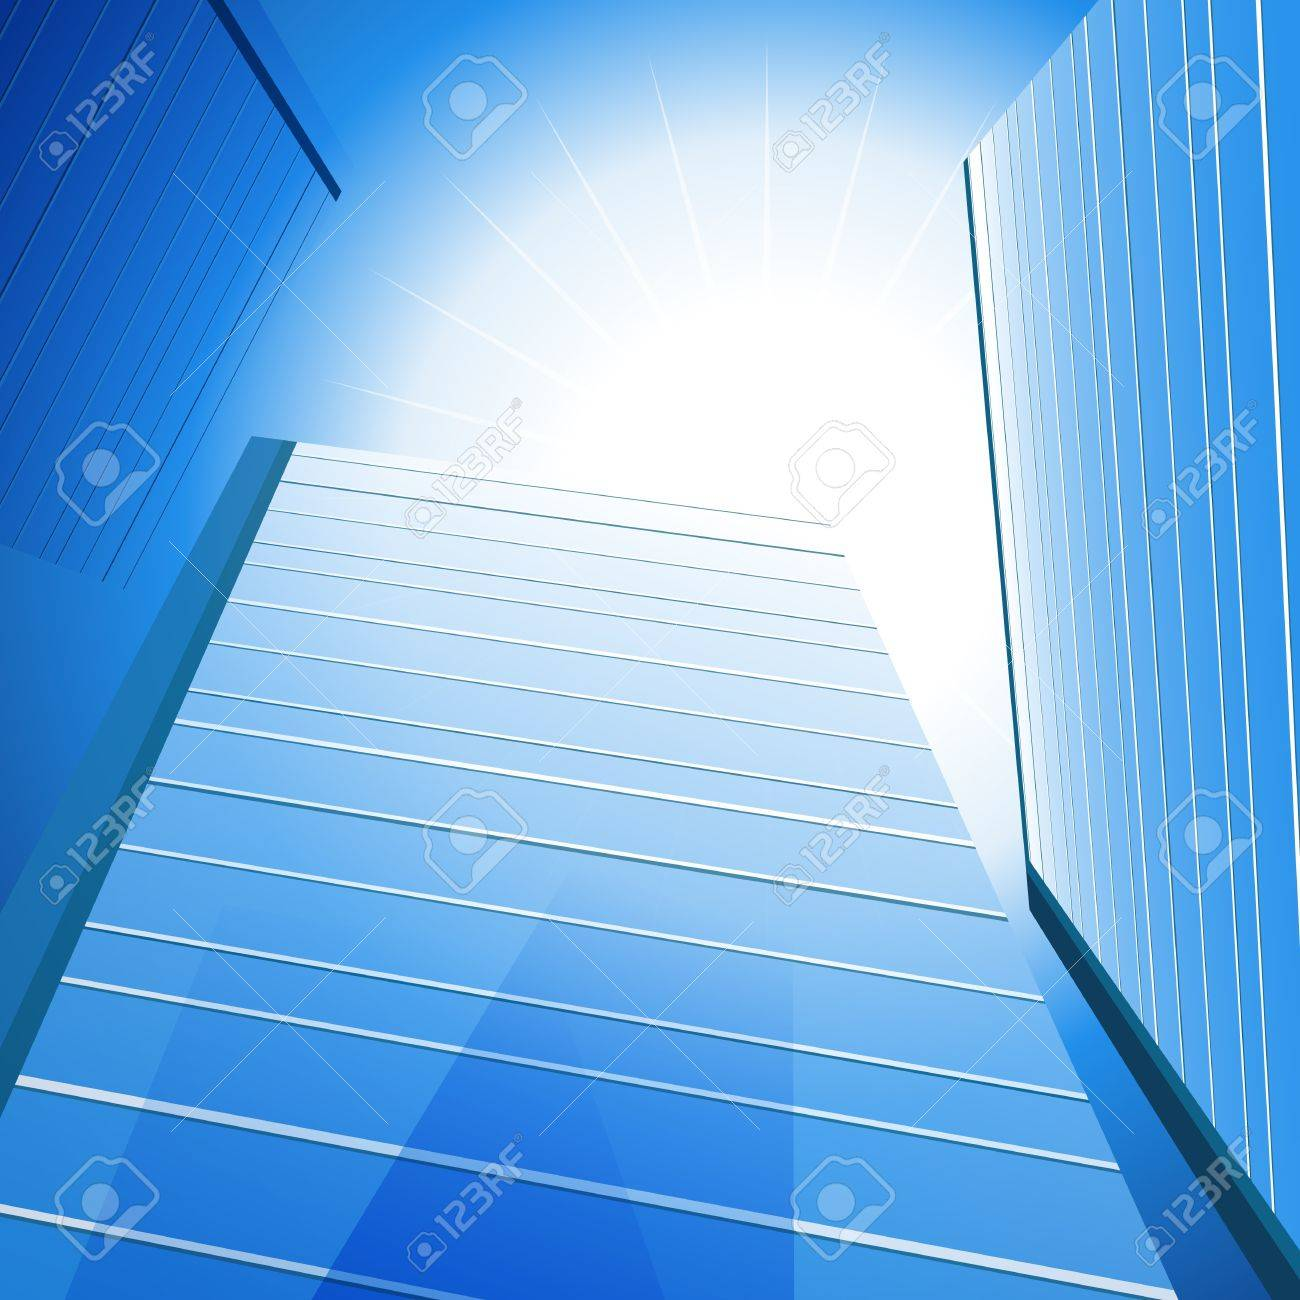 An image of a three tall glass buildings under the sun. Stock Vector - 11386806